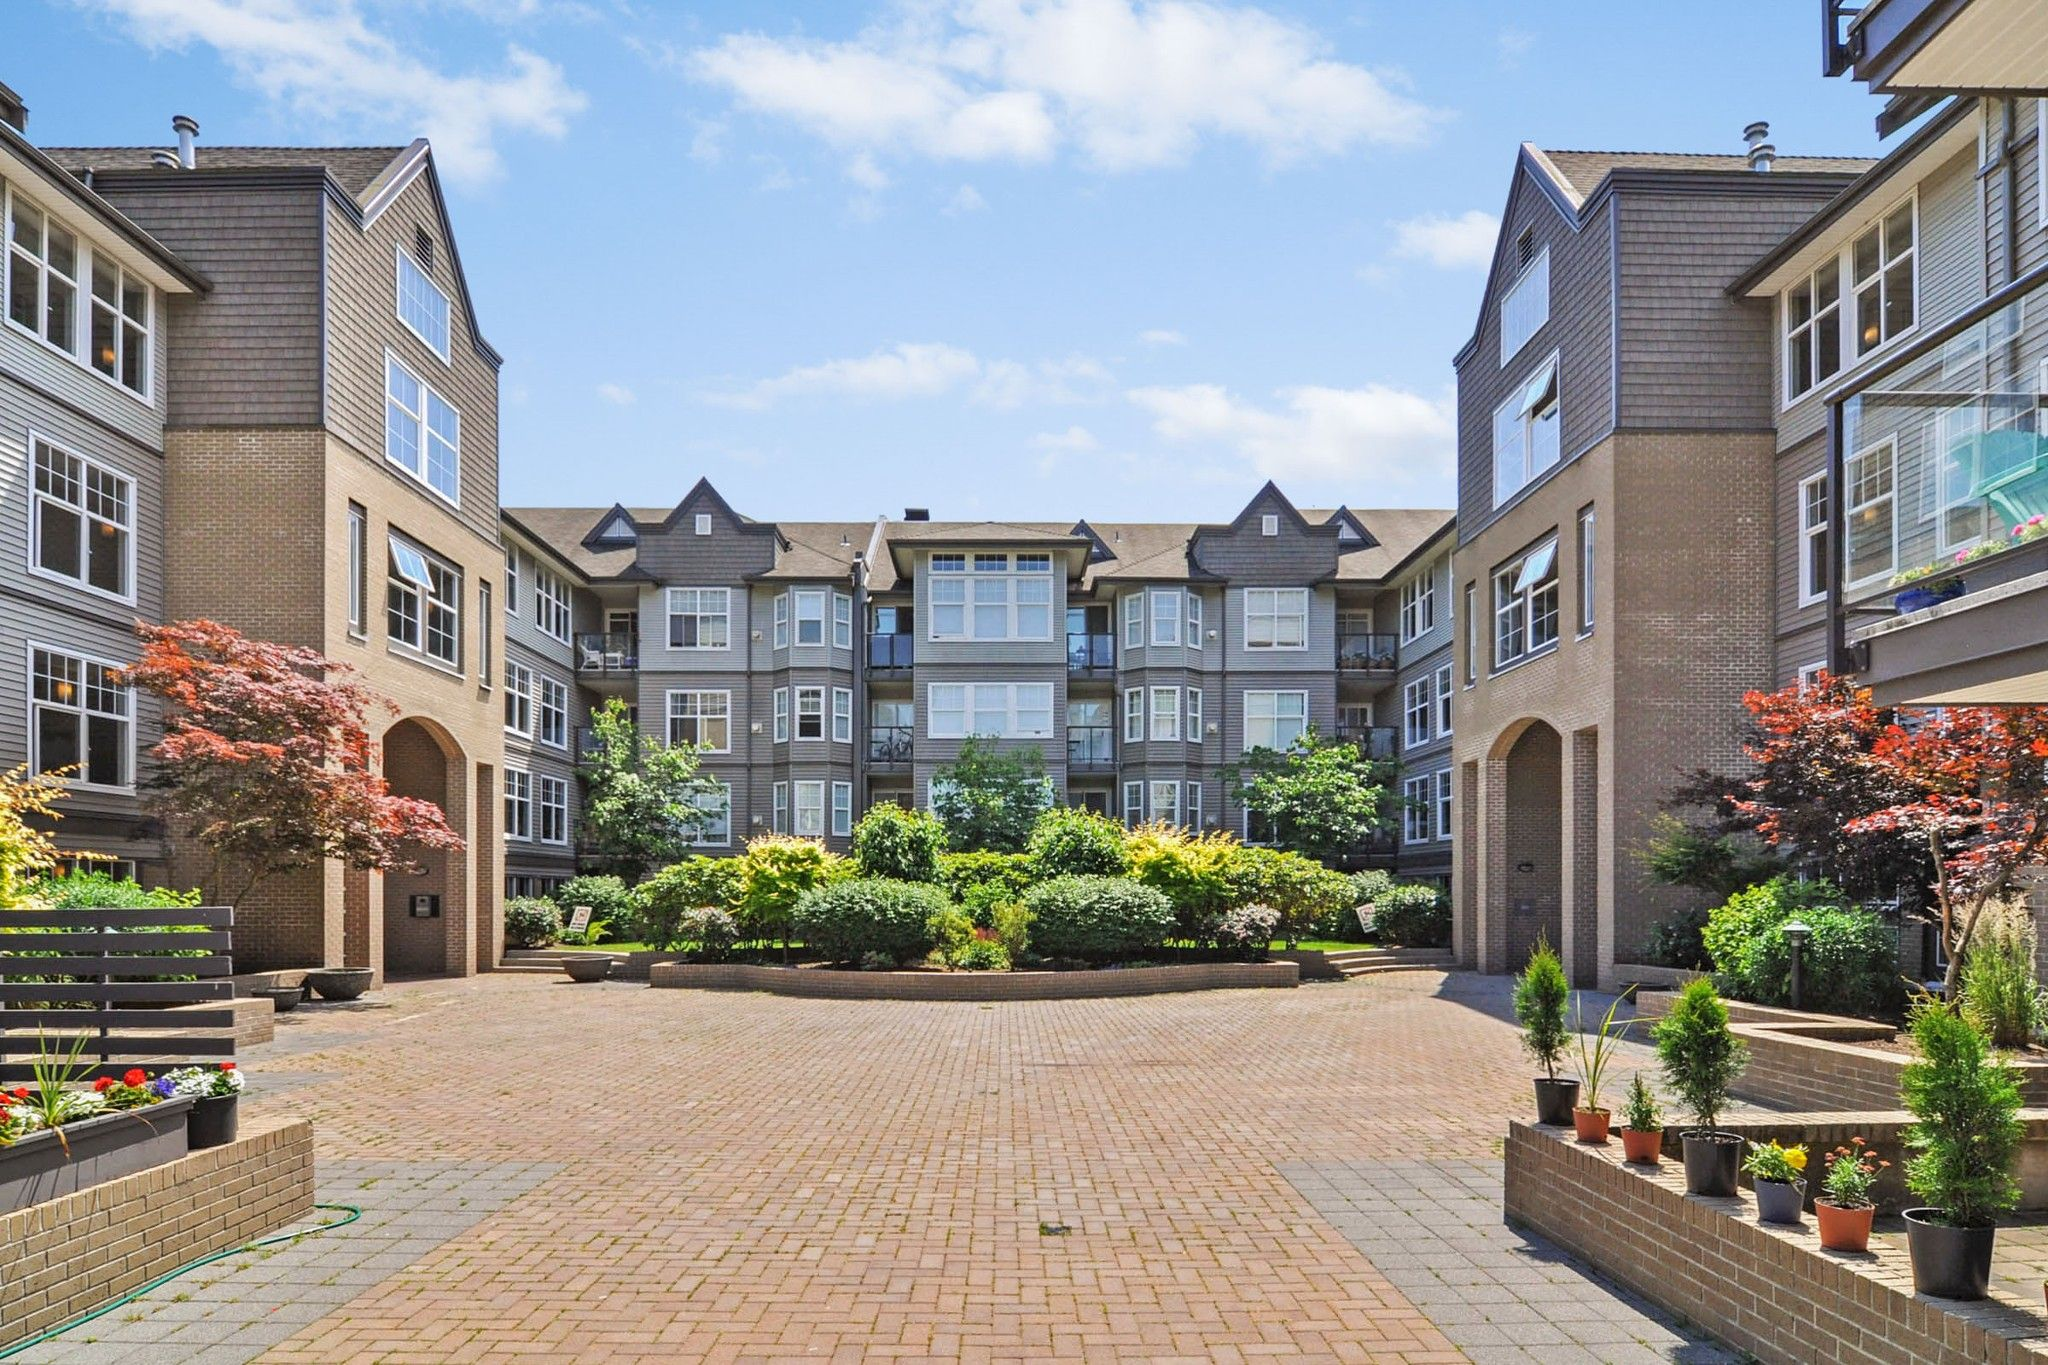 """Main Photo: 124 20200 56 Avenue in Langley: Langley City Condo for sale in """"THE BENTLEY"""" : MLS®# R2585180"""